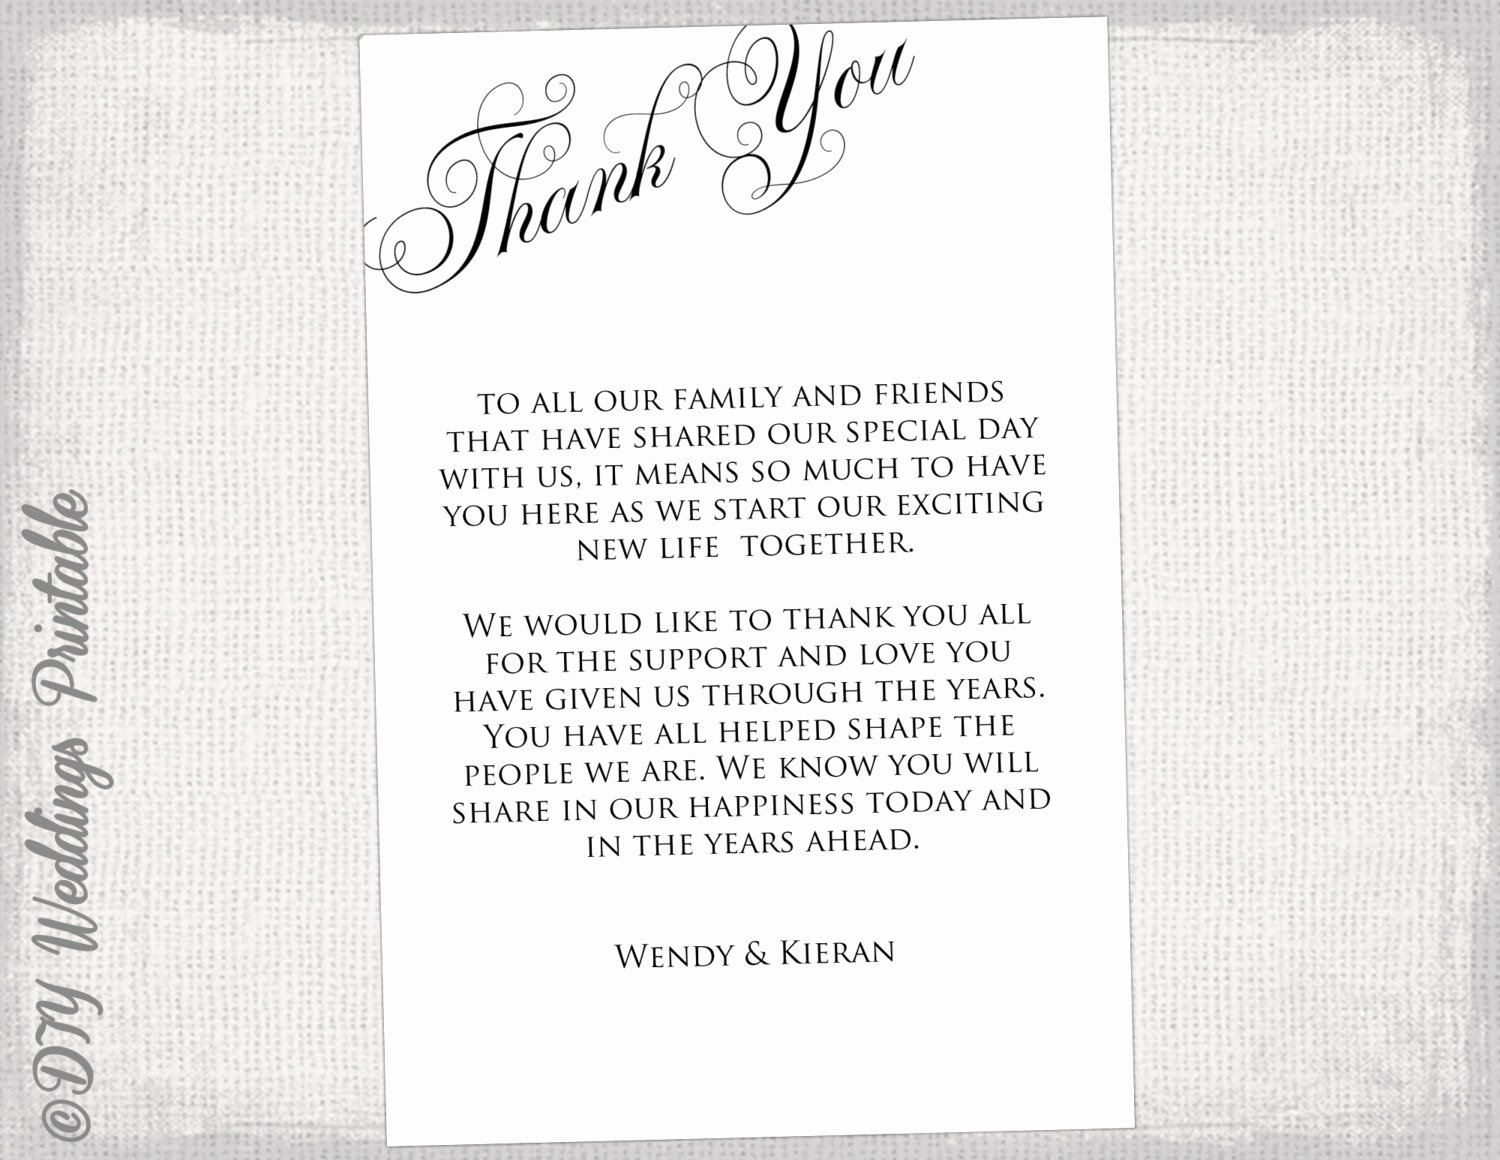 Wedding Thank You Card Template Luxury Printable Thank You Card Template Black & White Wedding Thank